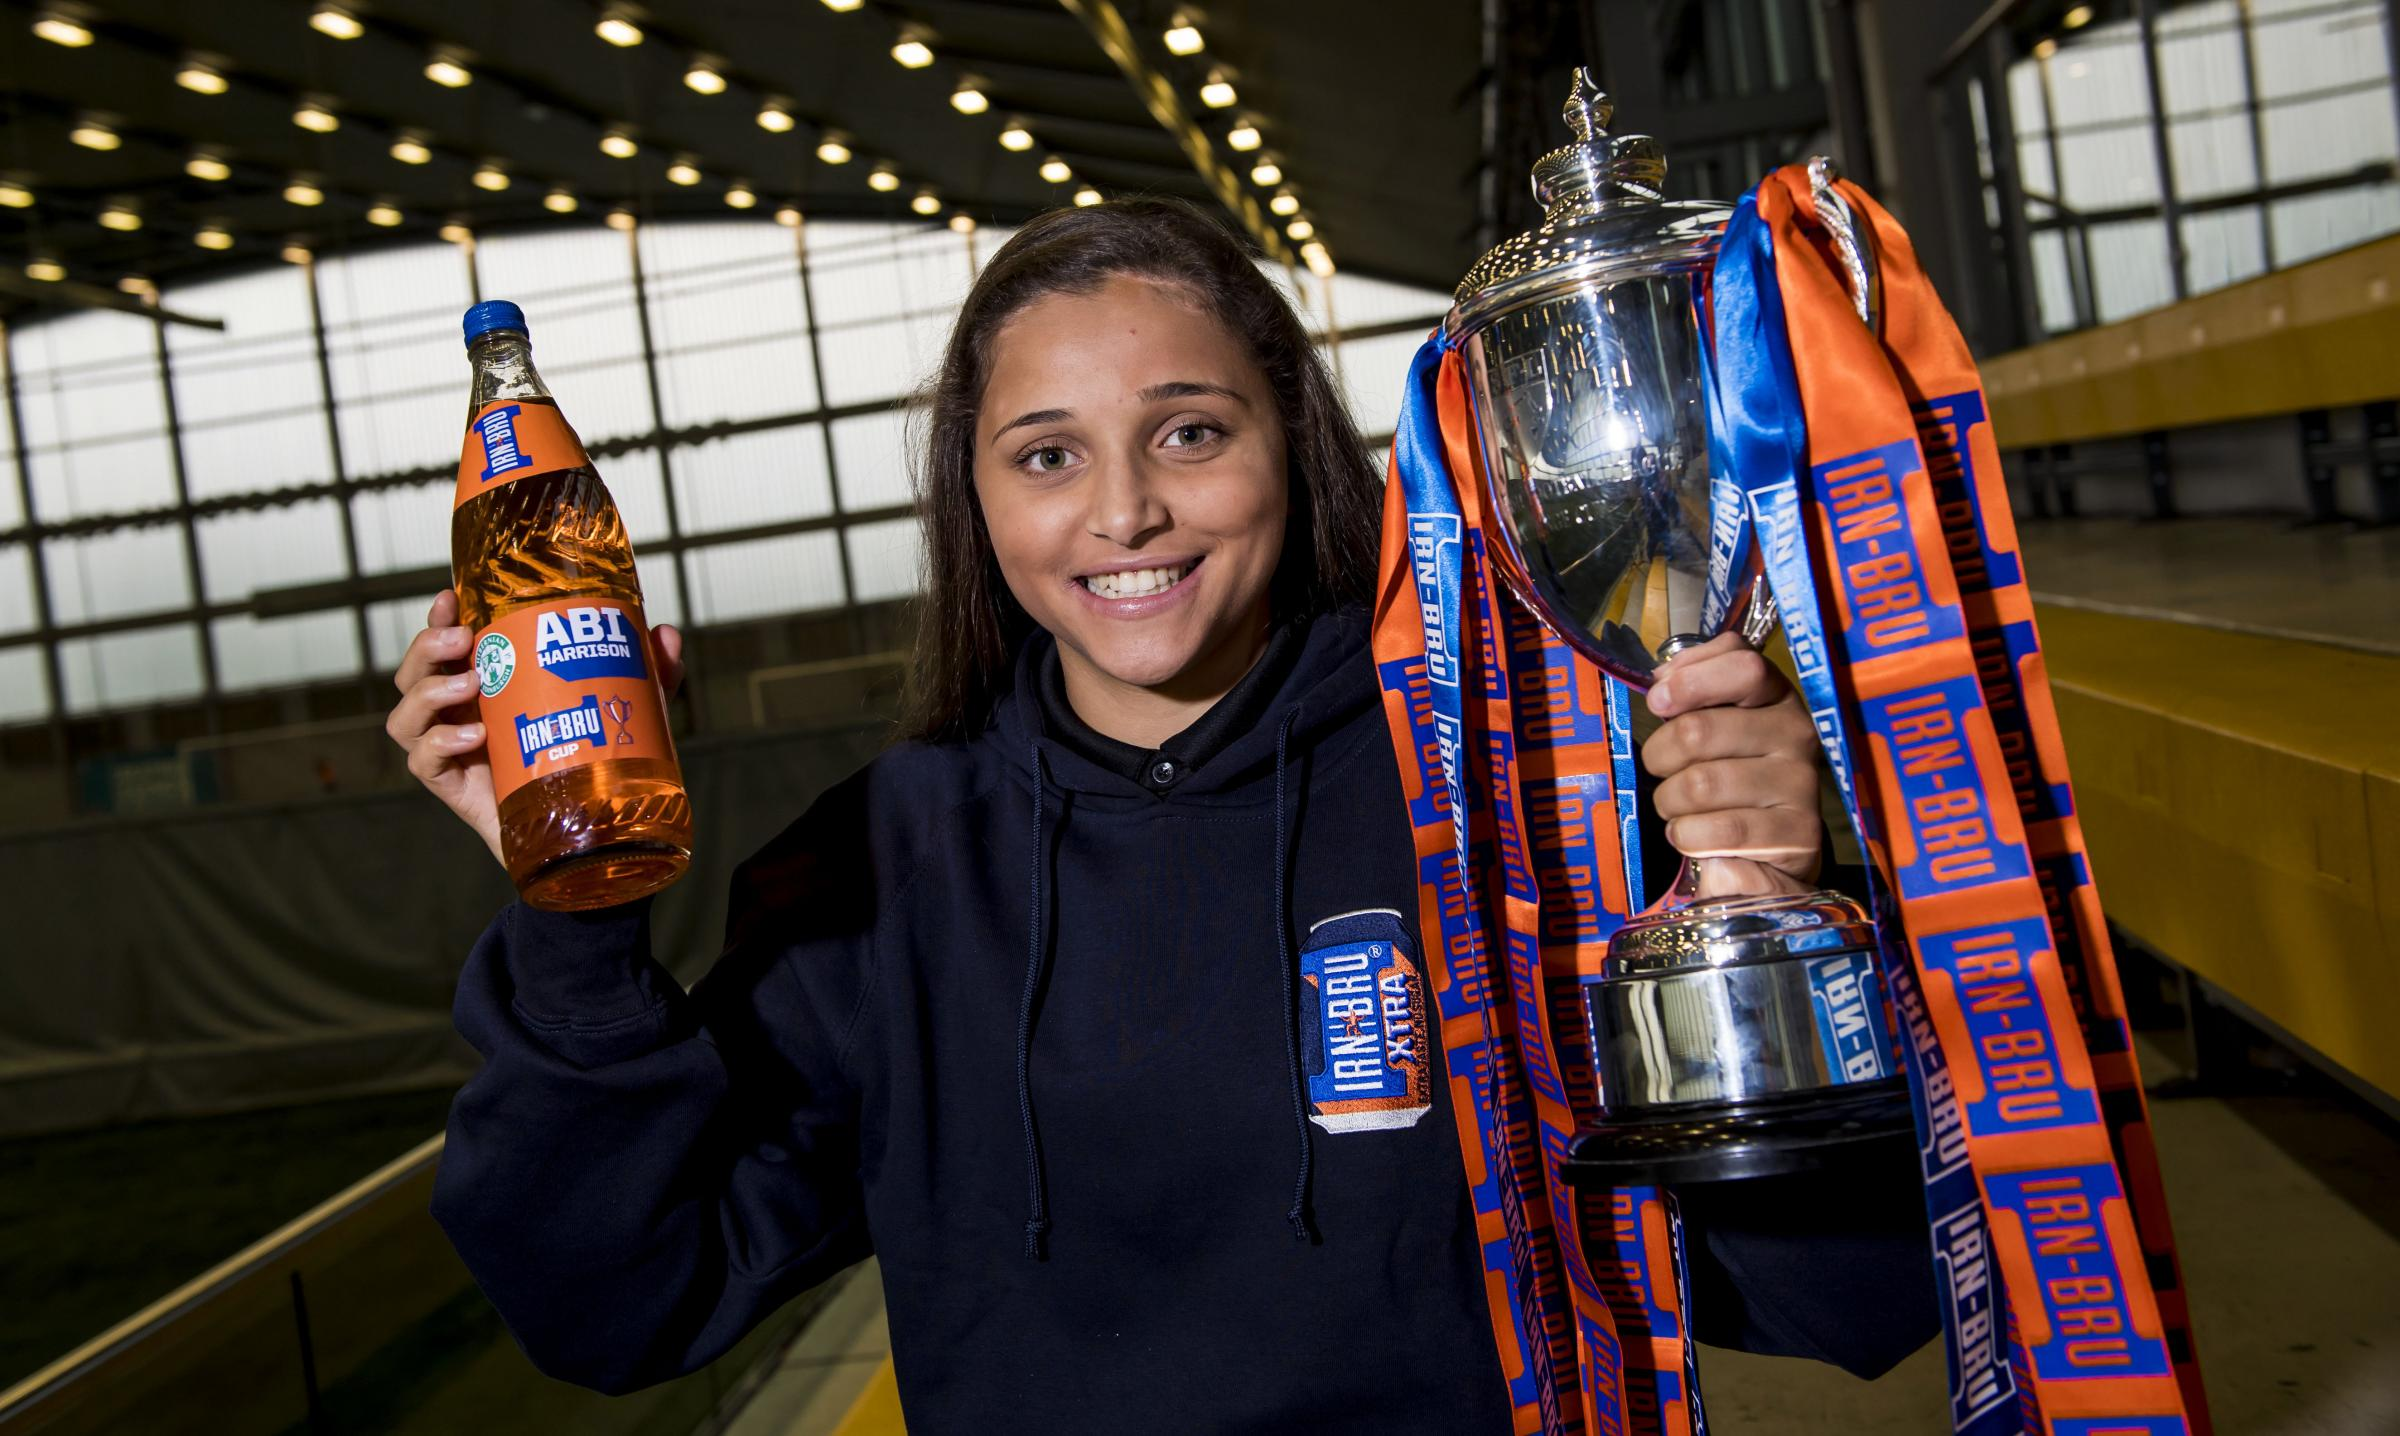 Hibernian Ladies' Abi Harrison helped make the draw for the Irn-Bru Cup